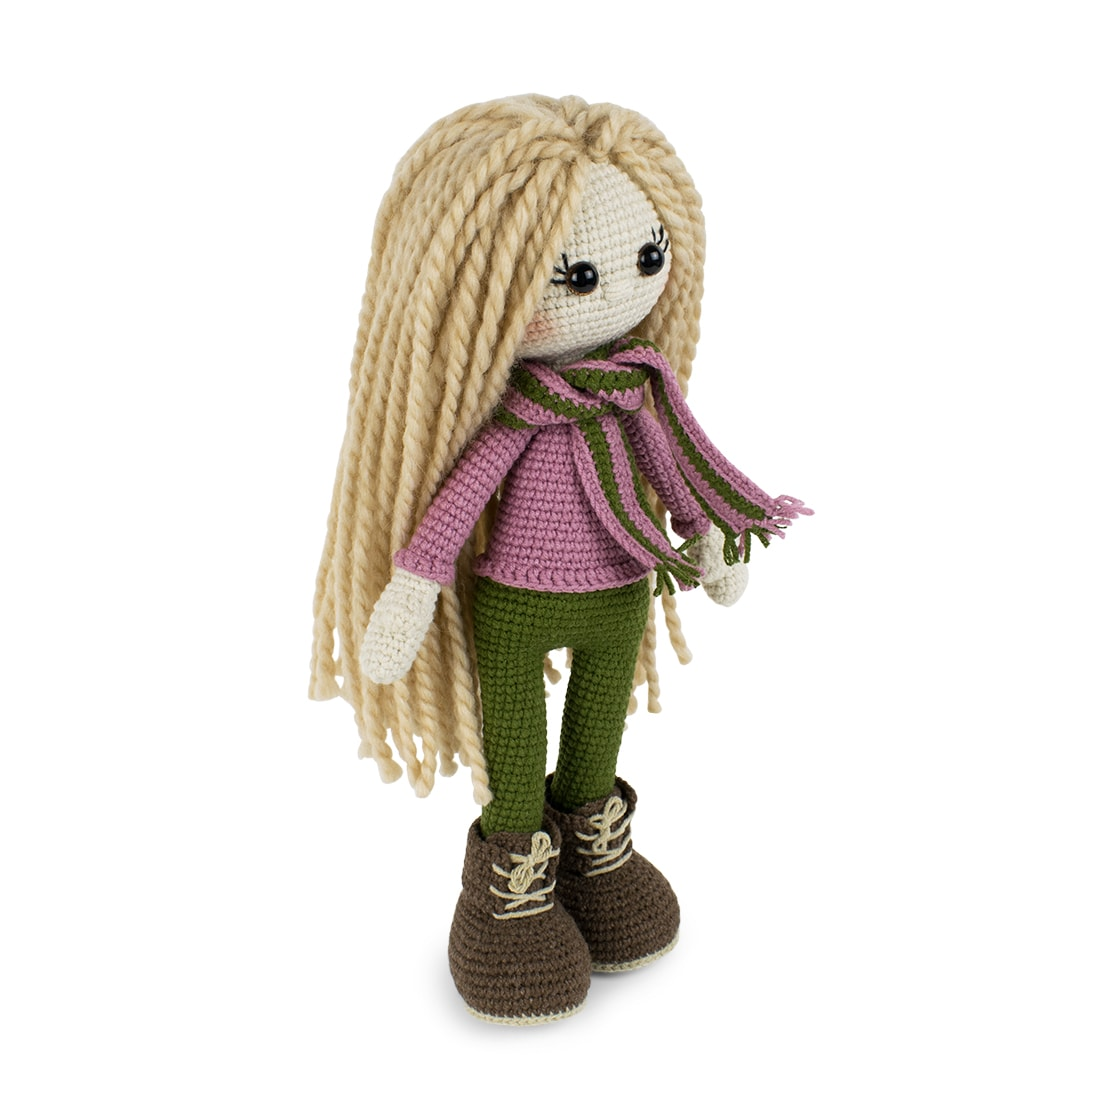 Free Kelly Doll crochet pattern